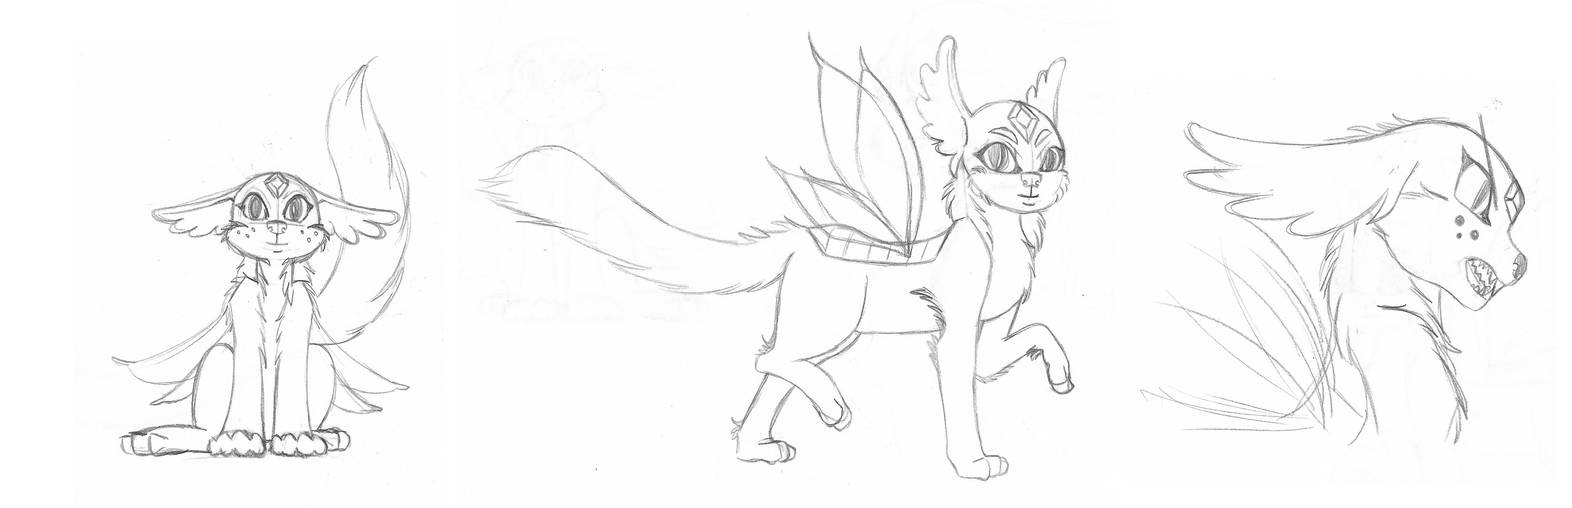 Contest Entry Sketch by Wildnature03